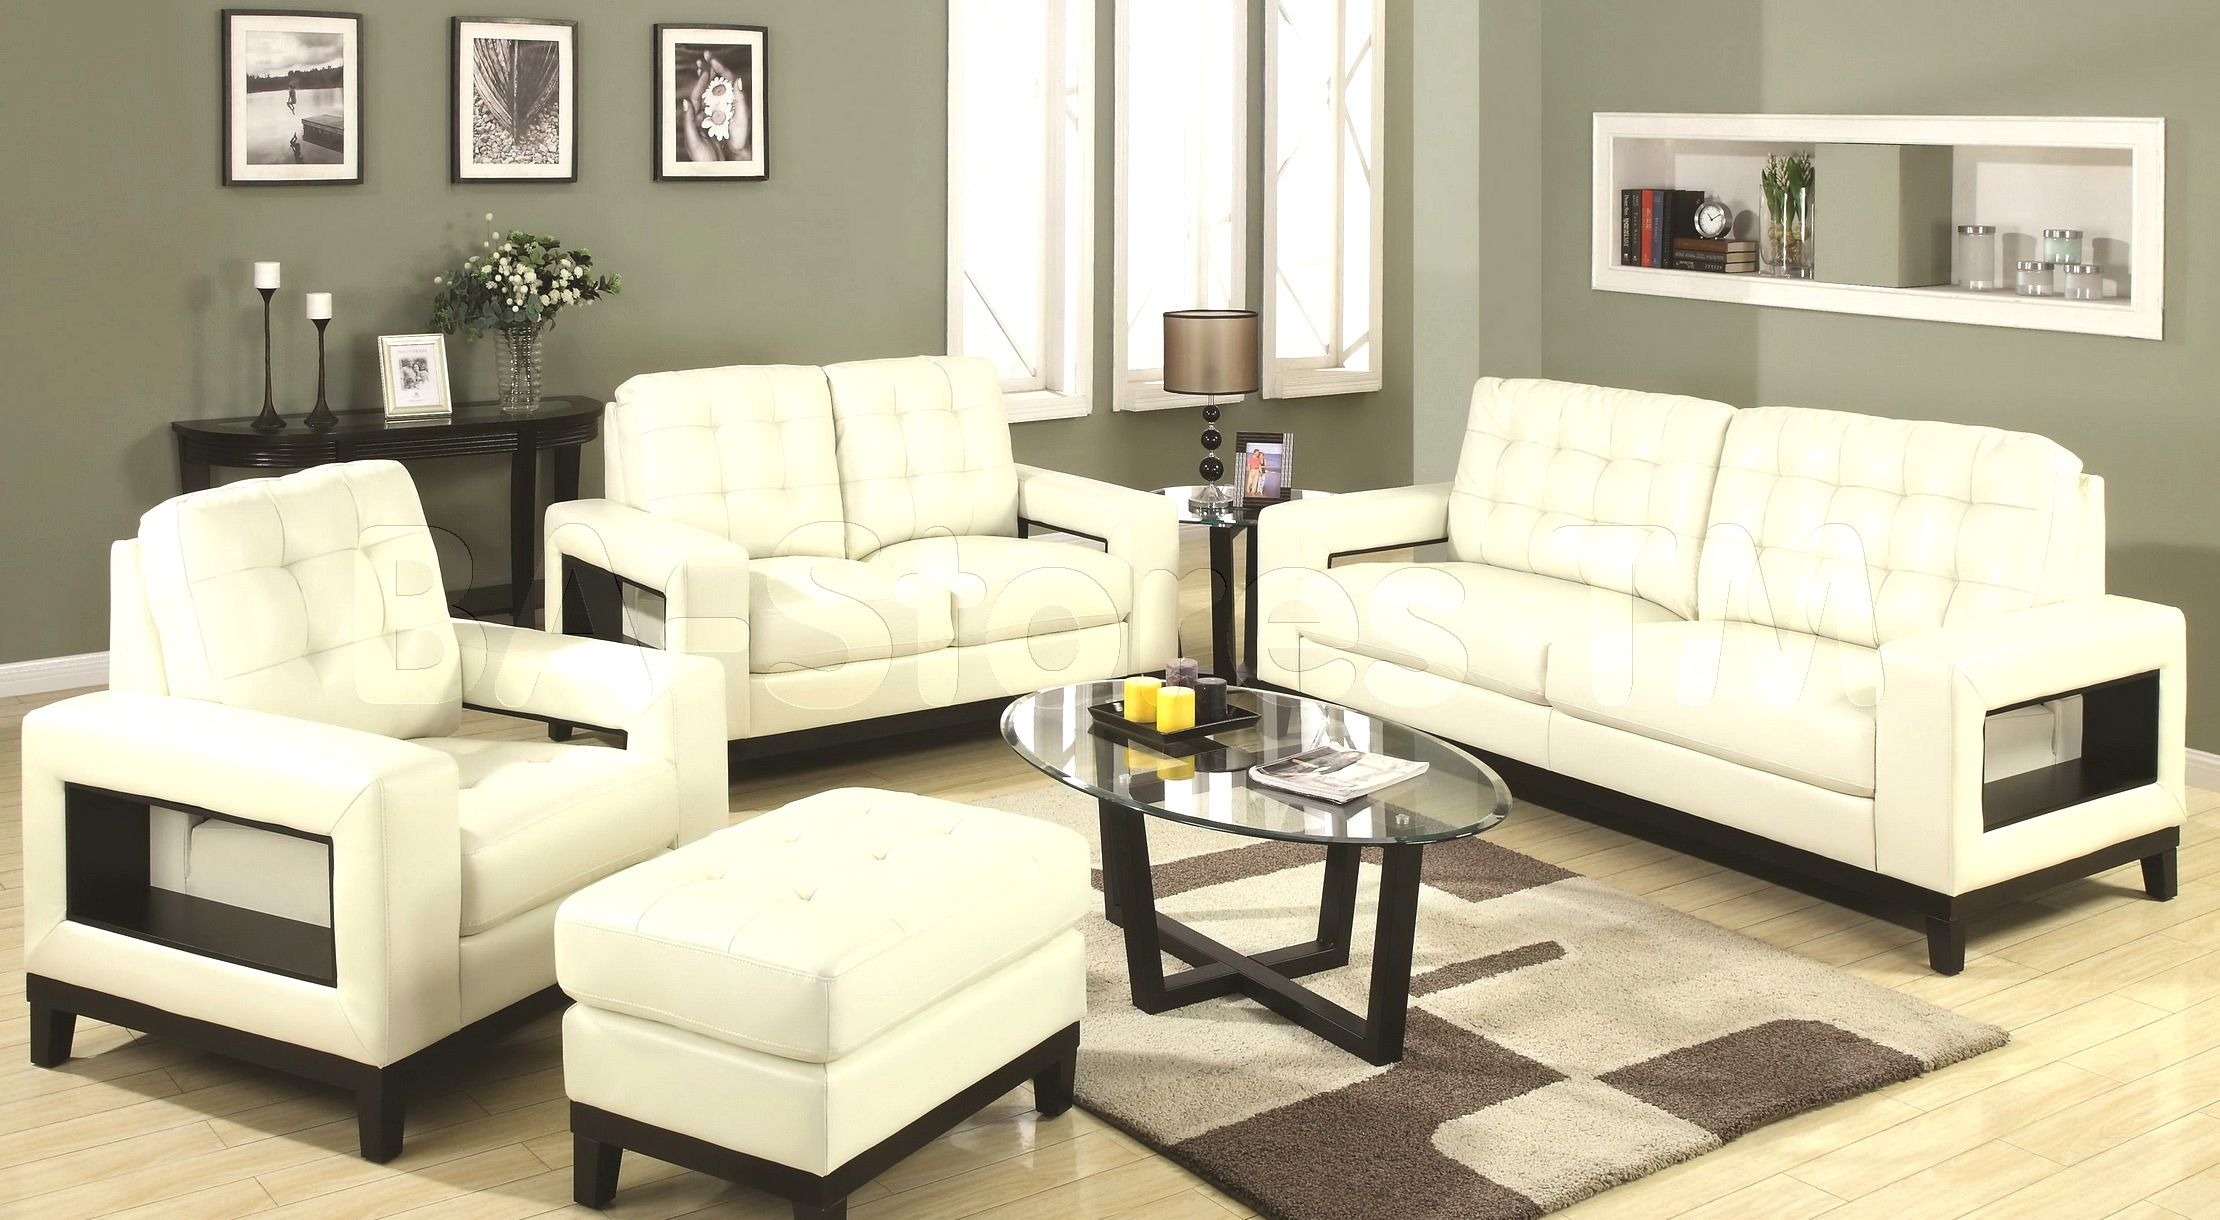 Contemporary Living Set Pin By Homysofa On Sofa Furniture Living Room Designs